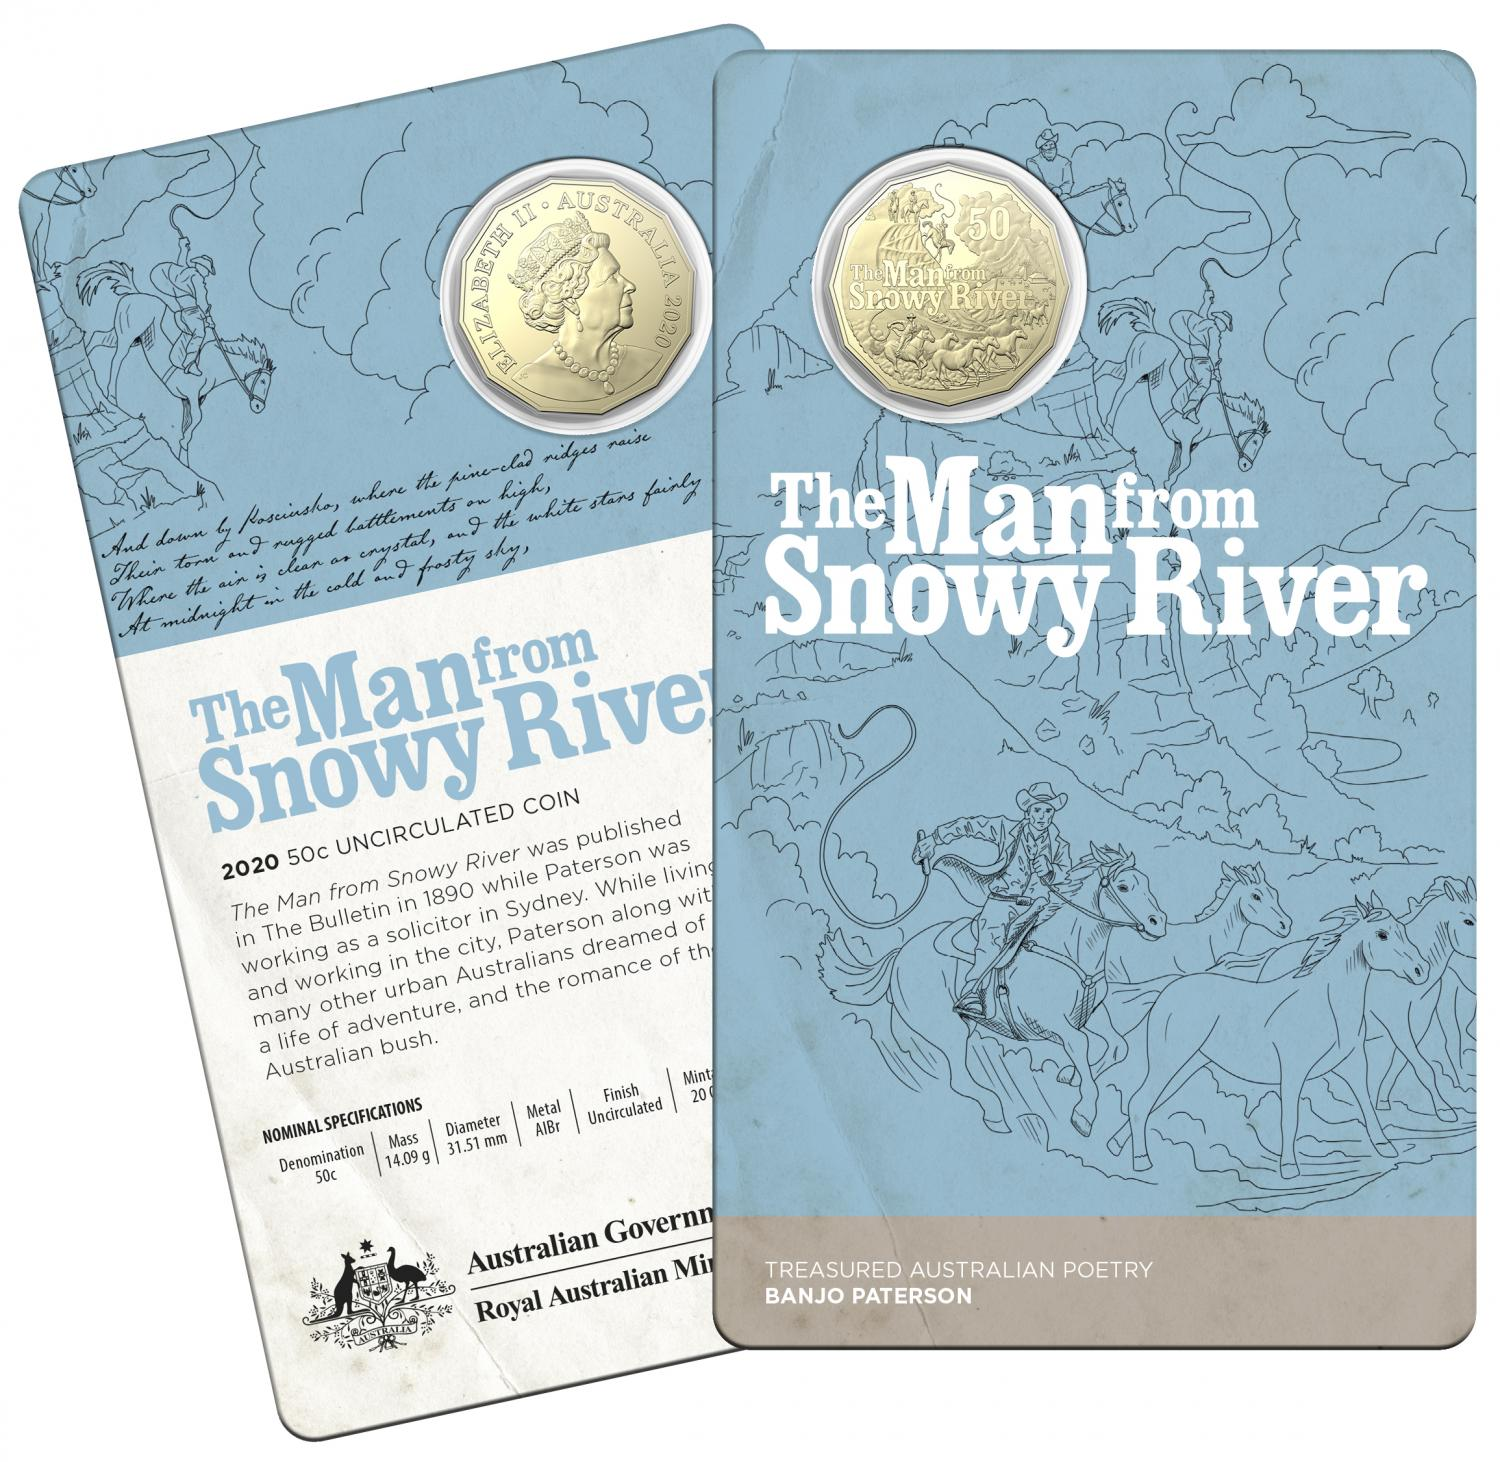 Thumbnail for 2020 50c Uncirculated Coin Treasured Australian Poetry Banjo Paterson - The Man From Snowy River